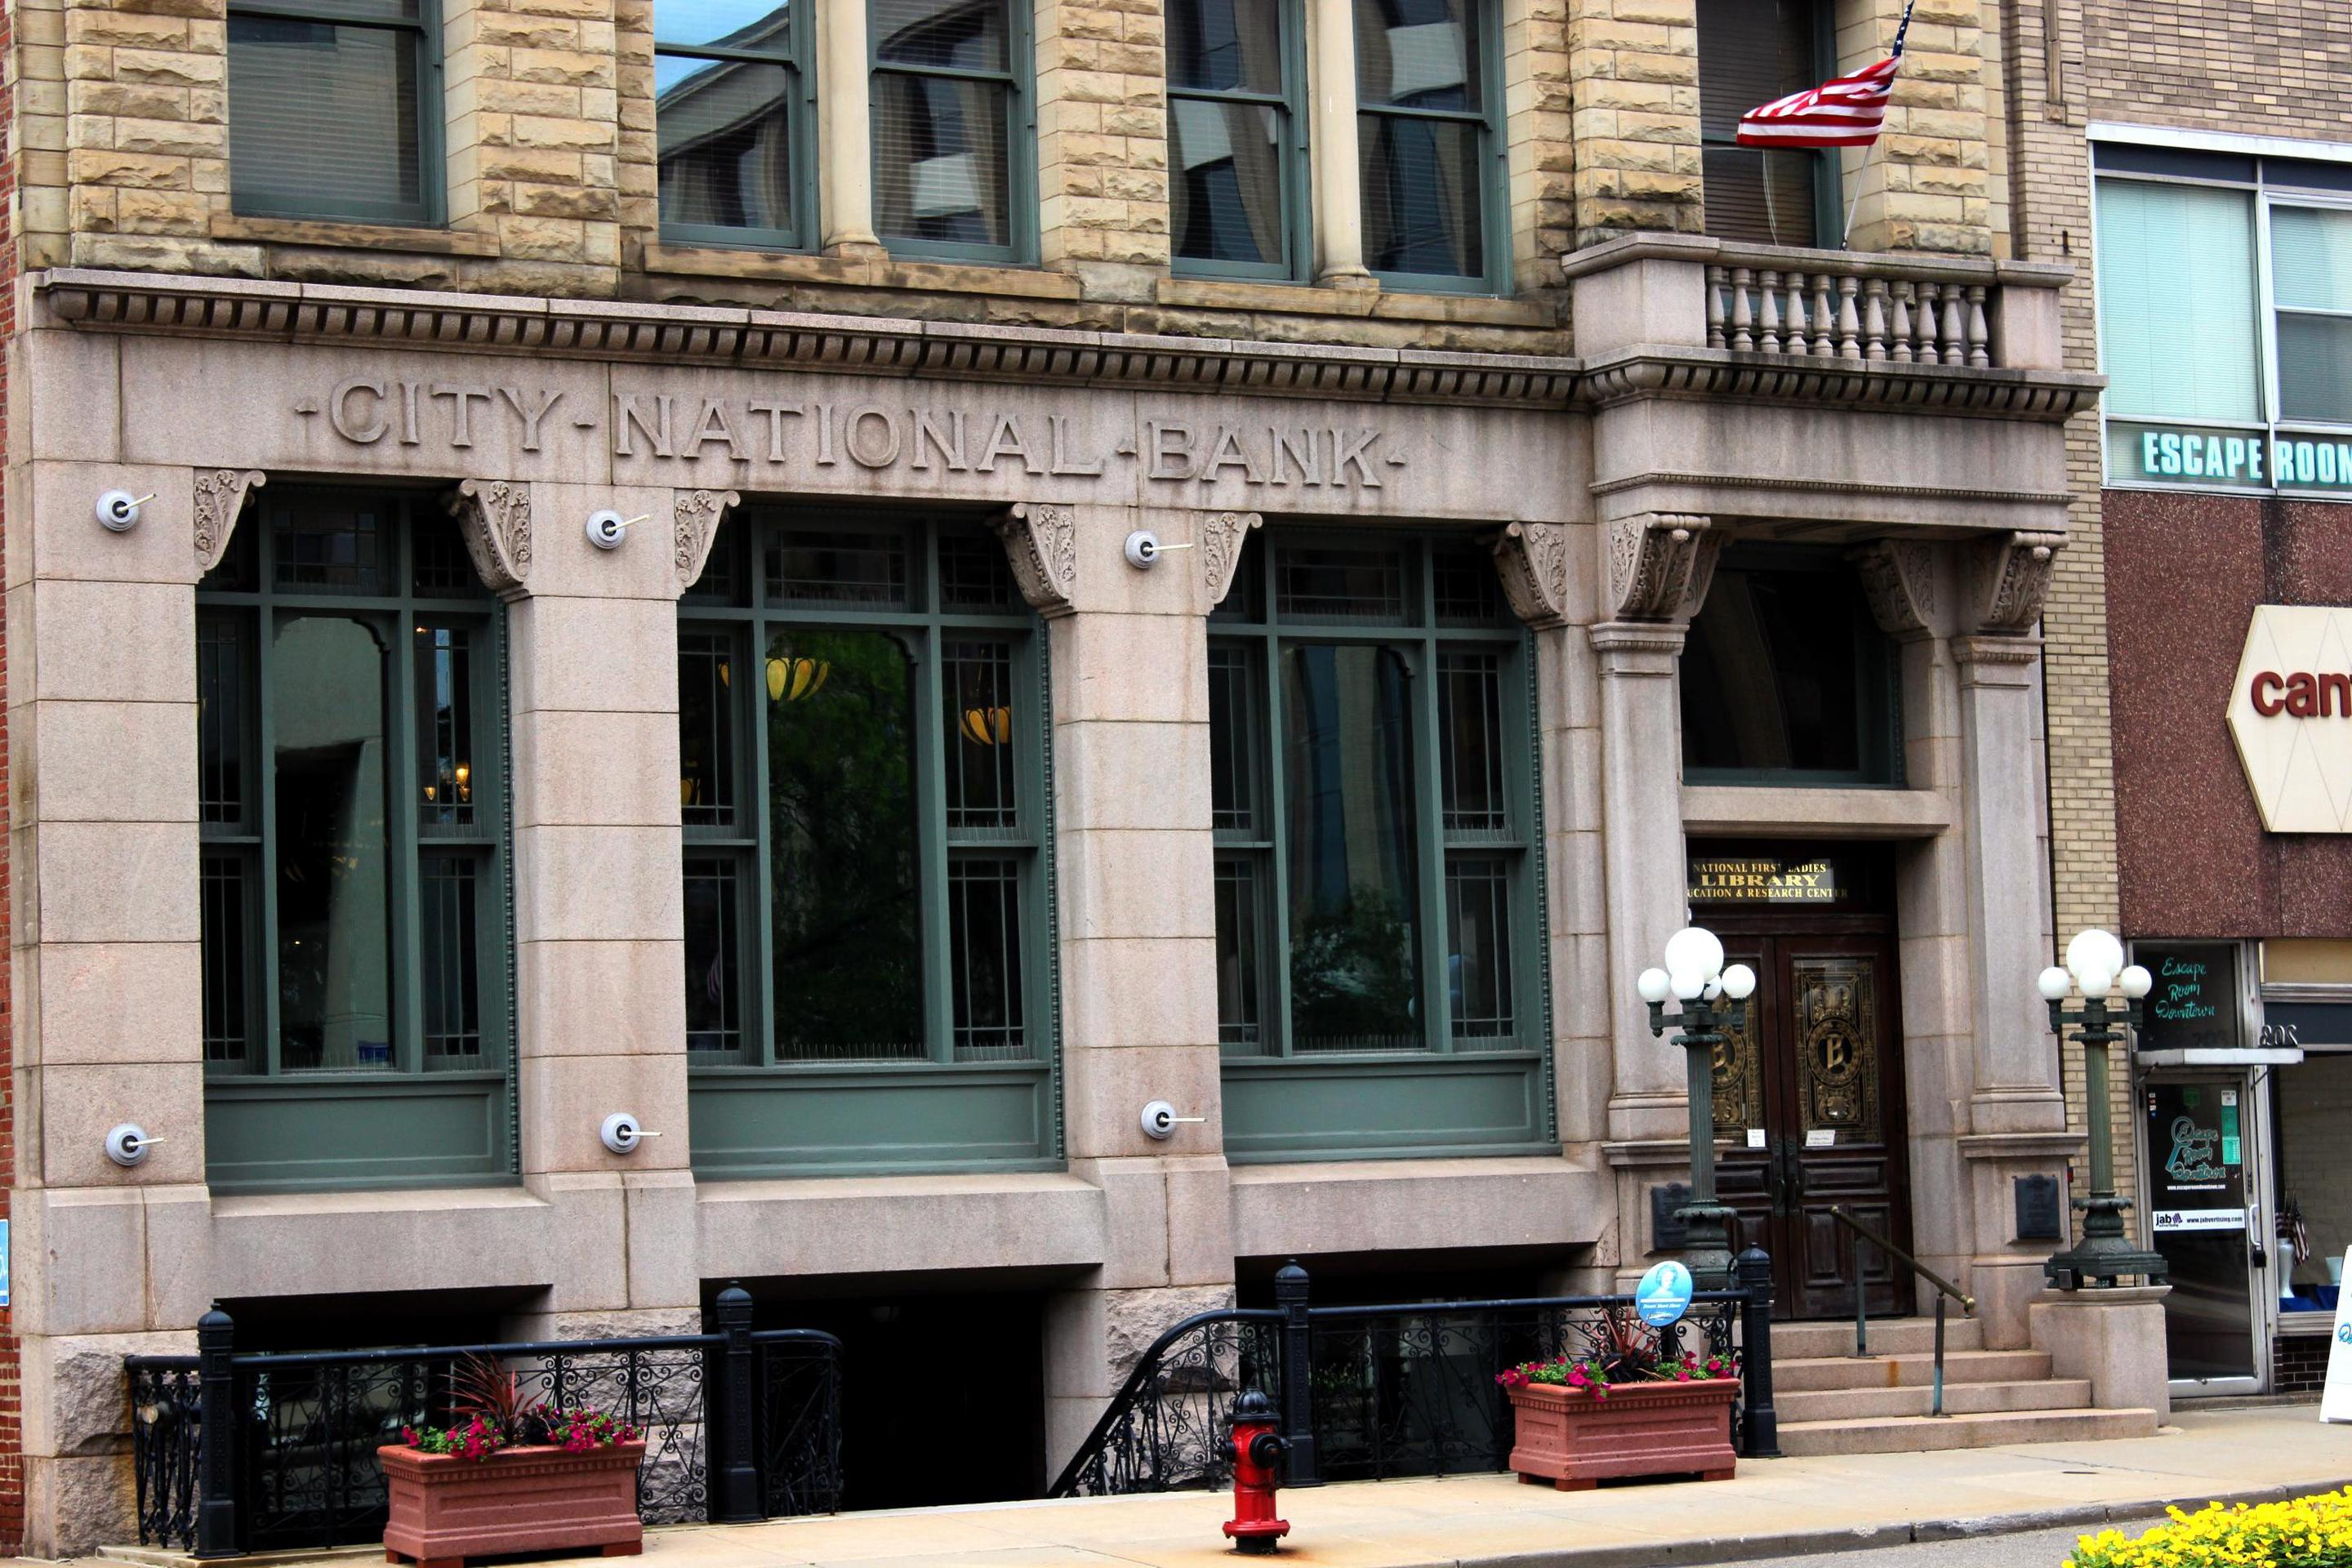 Front Door of the Education CenterThe education center is is the historic City National Bank building.